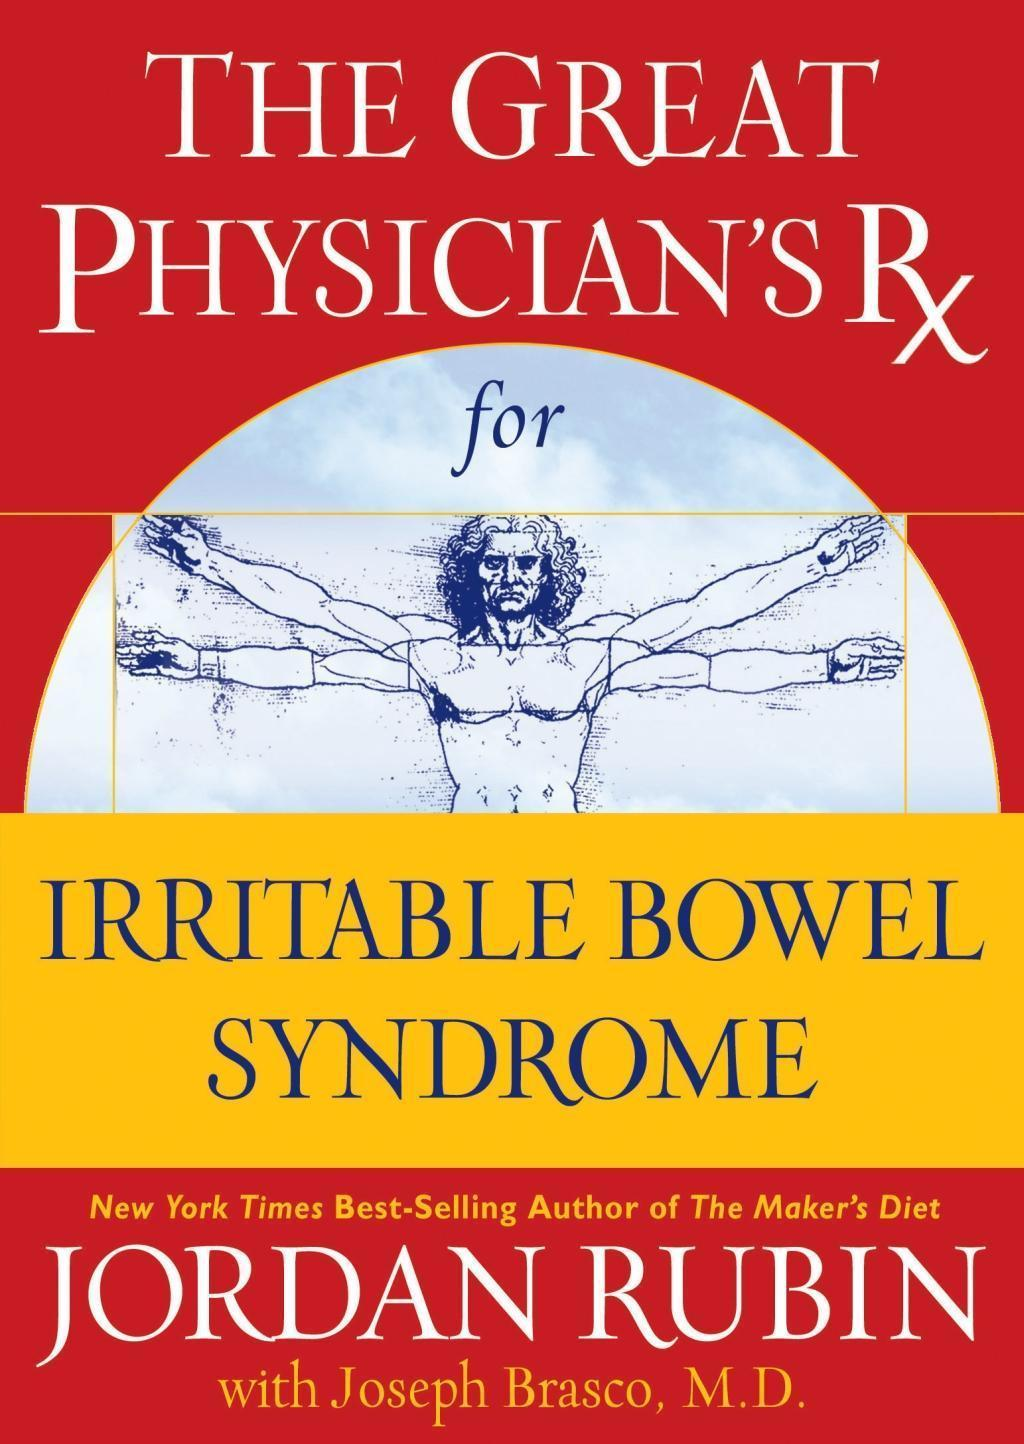 The Great Physician's Rx for Irritable Bowel Syndrome